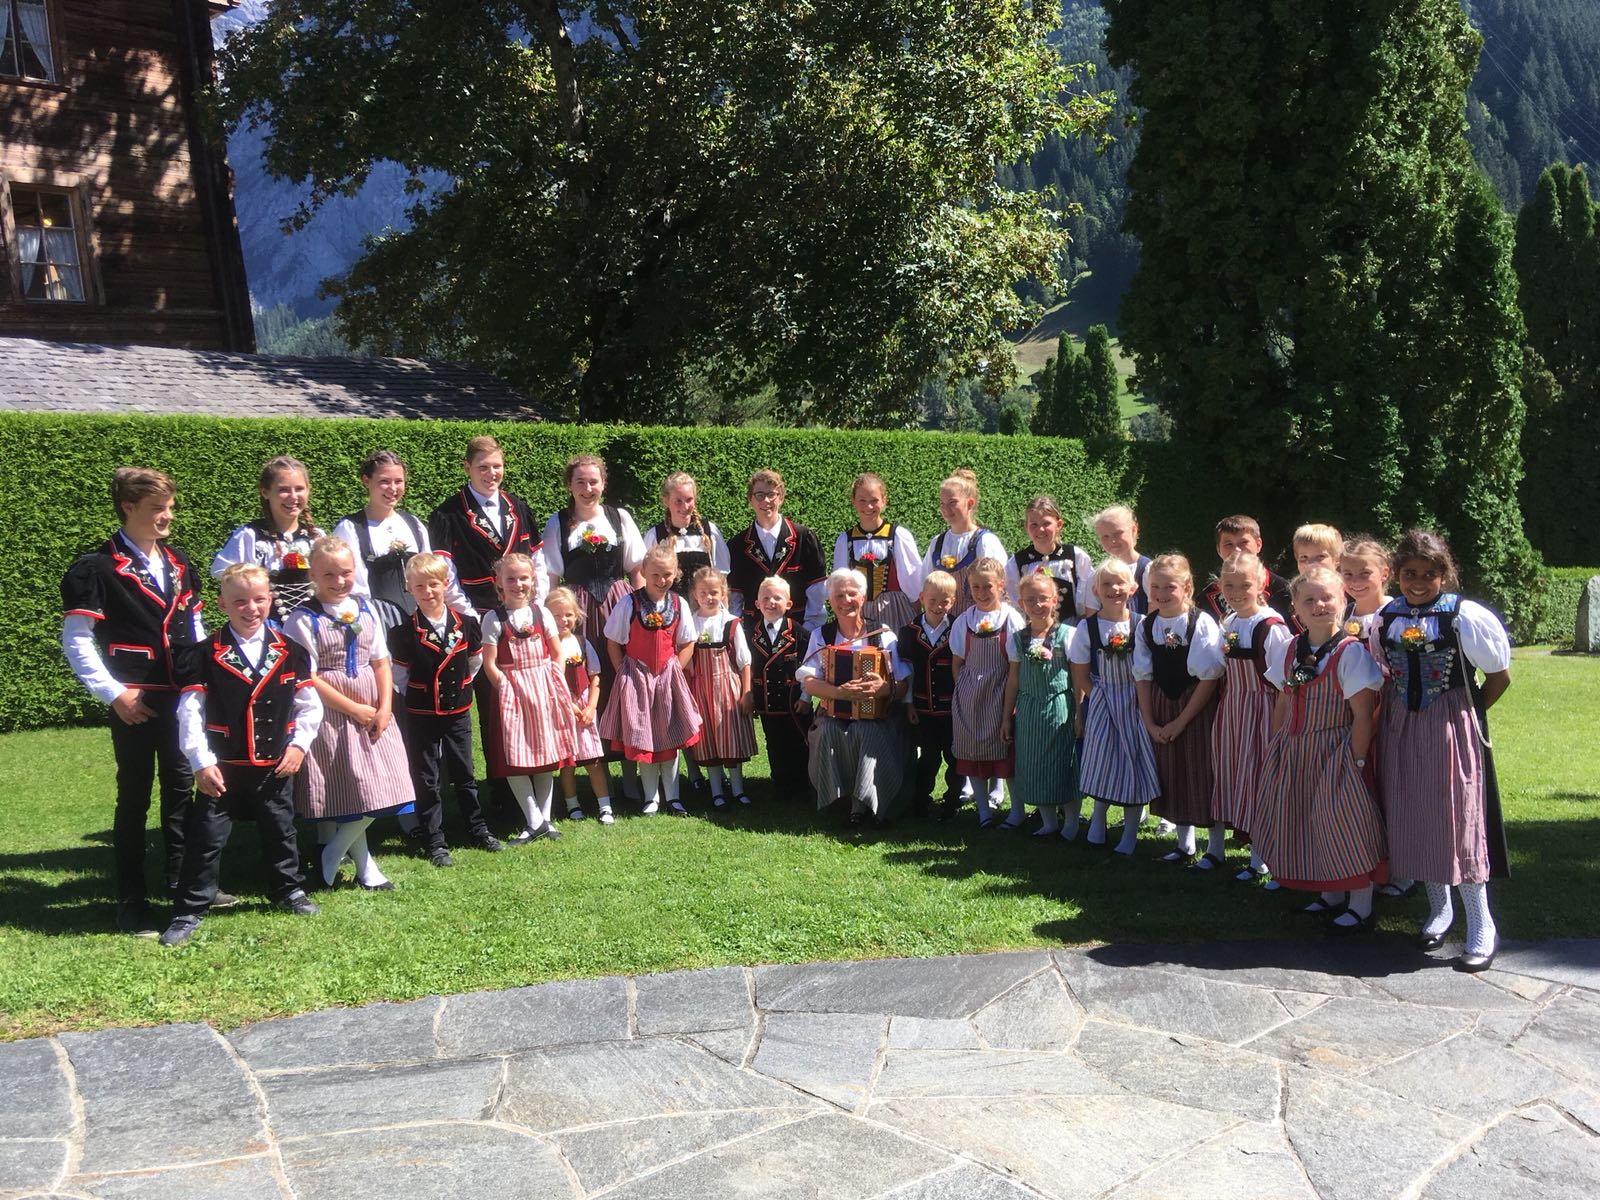 Chinderchörlitreffen in Grindelwald im September 2018